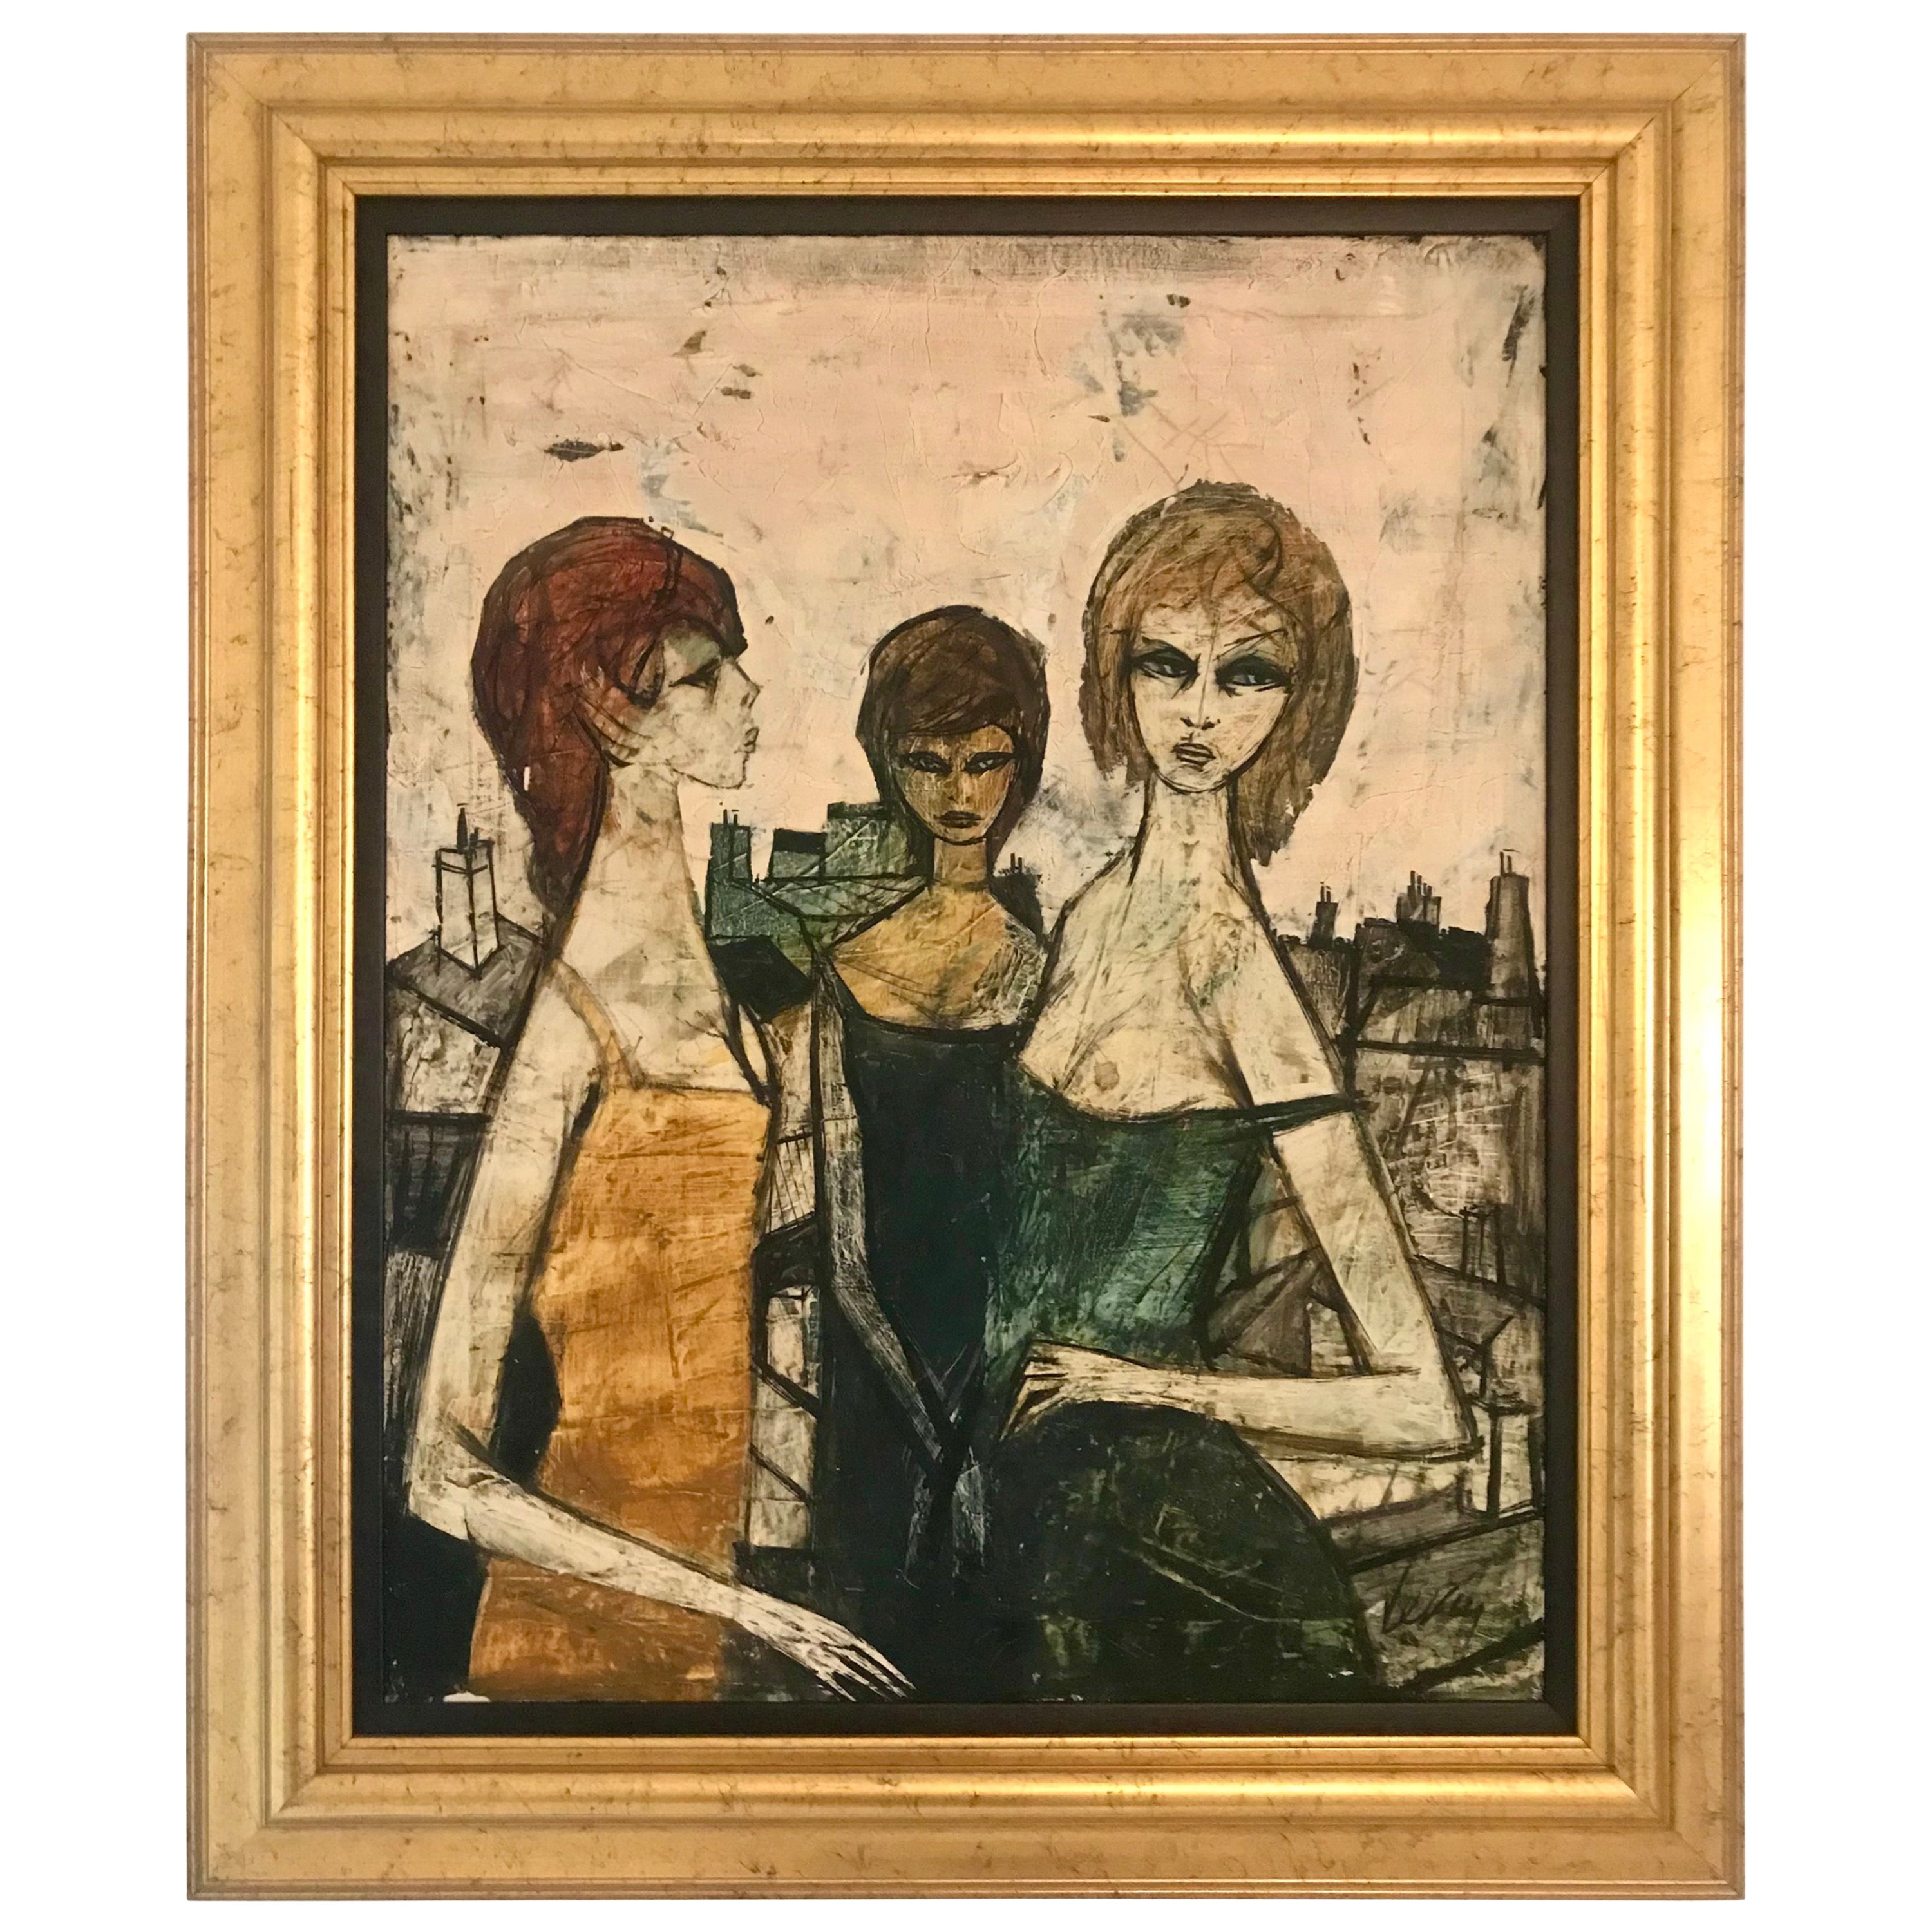 Original Oil on Canvas Painting by Charles Levier of Les Filles, circa 1950s